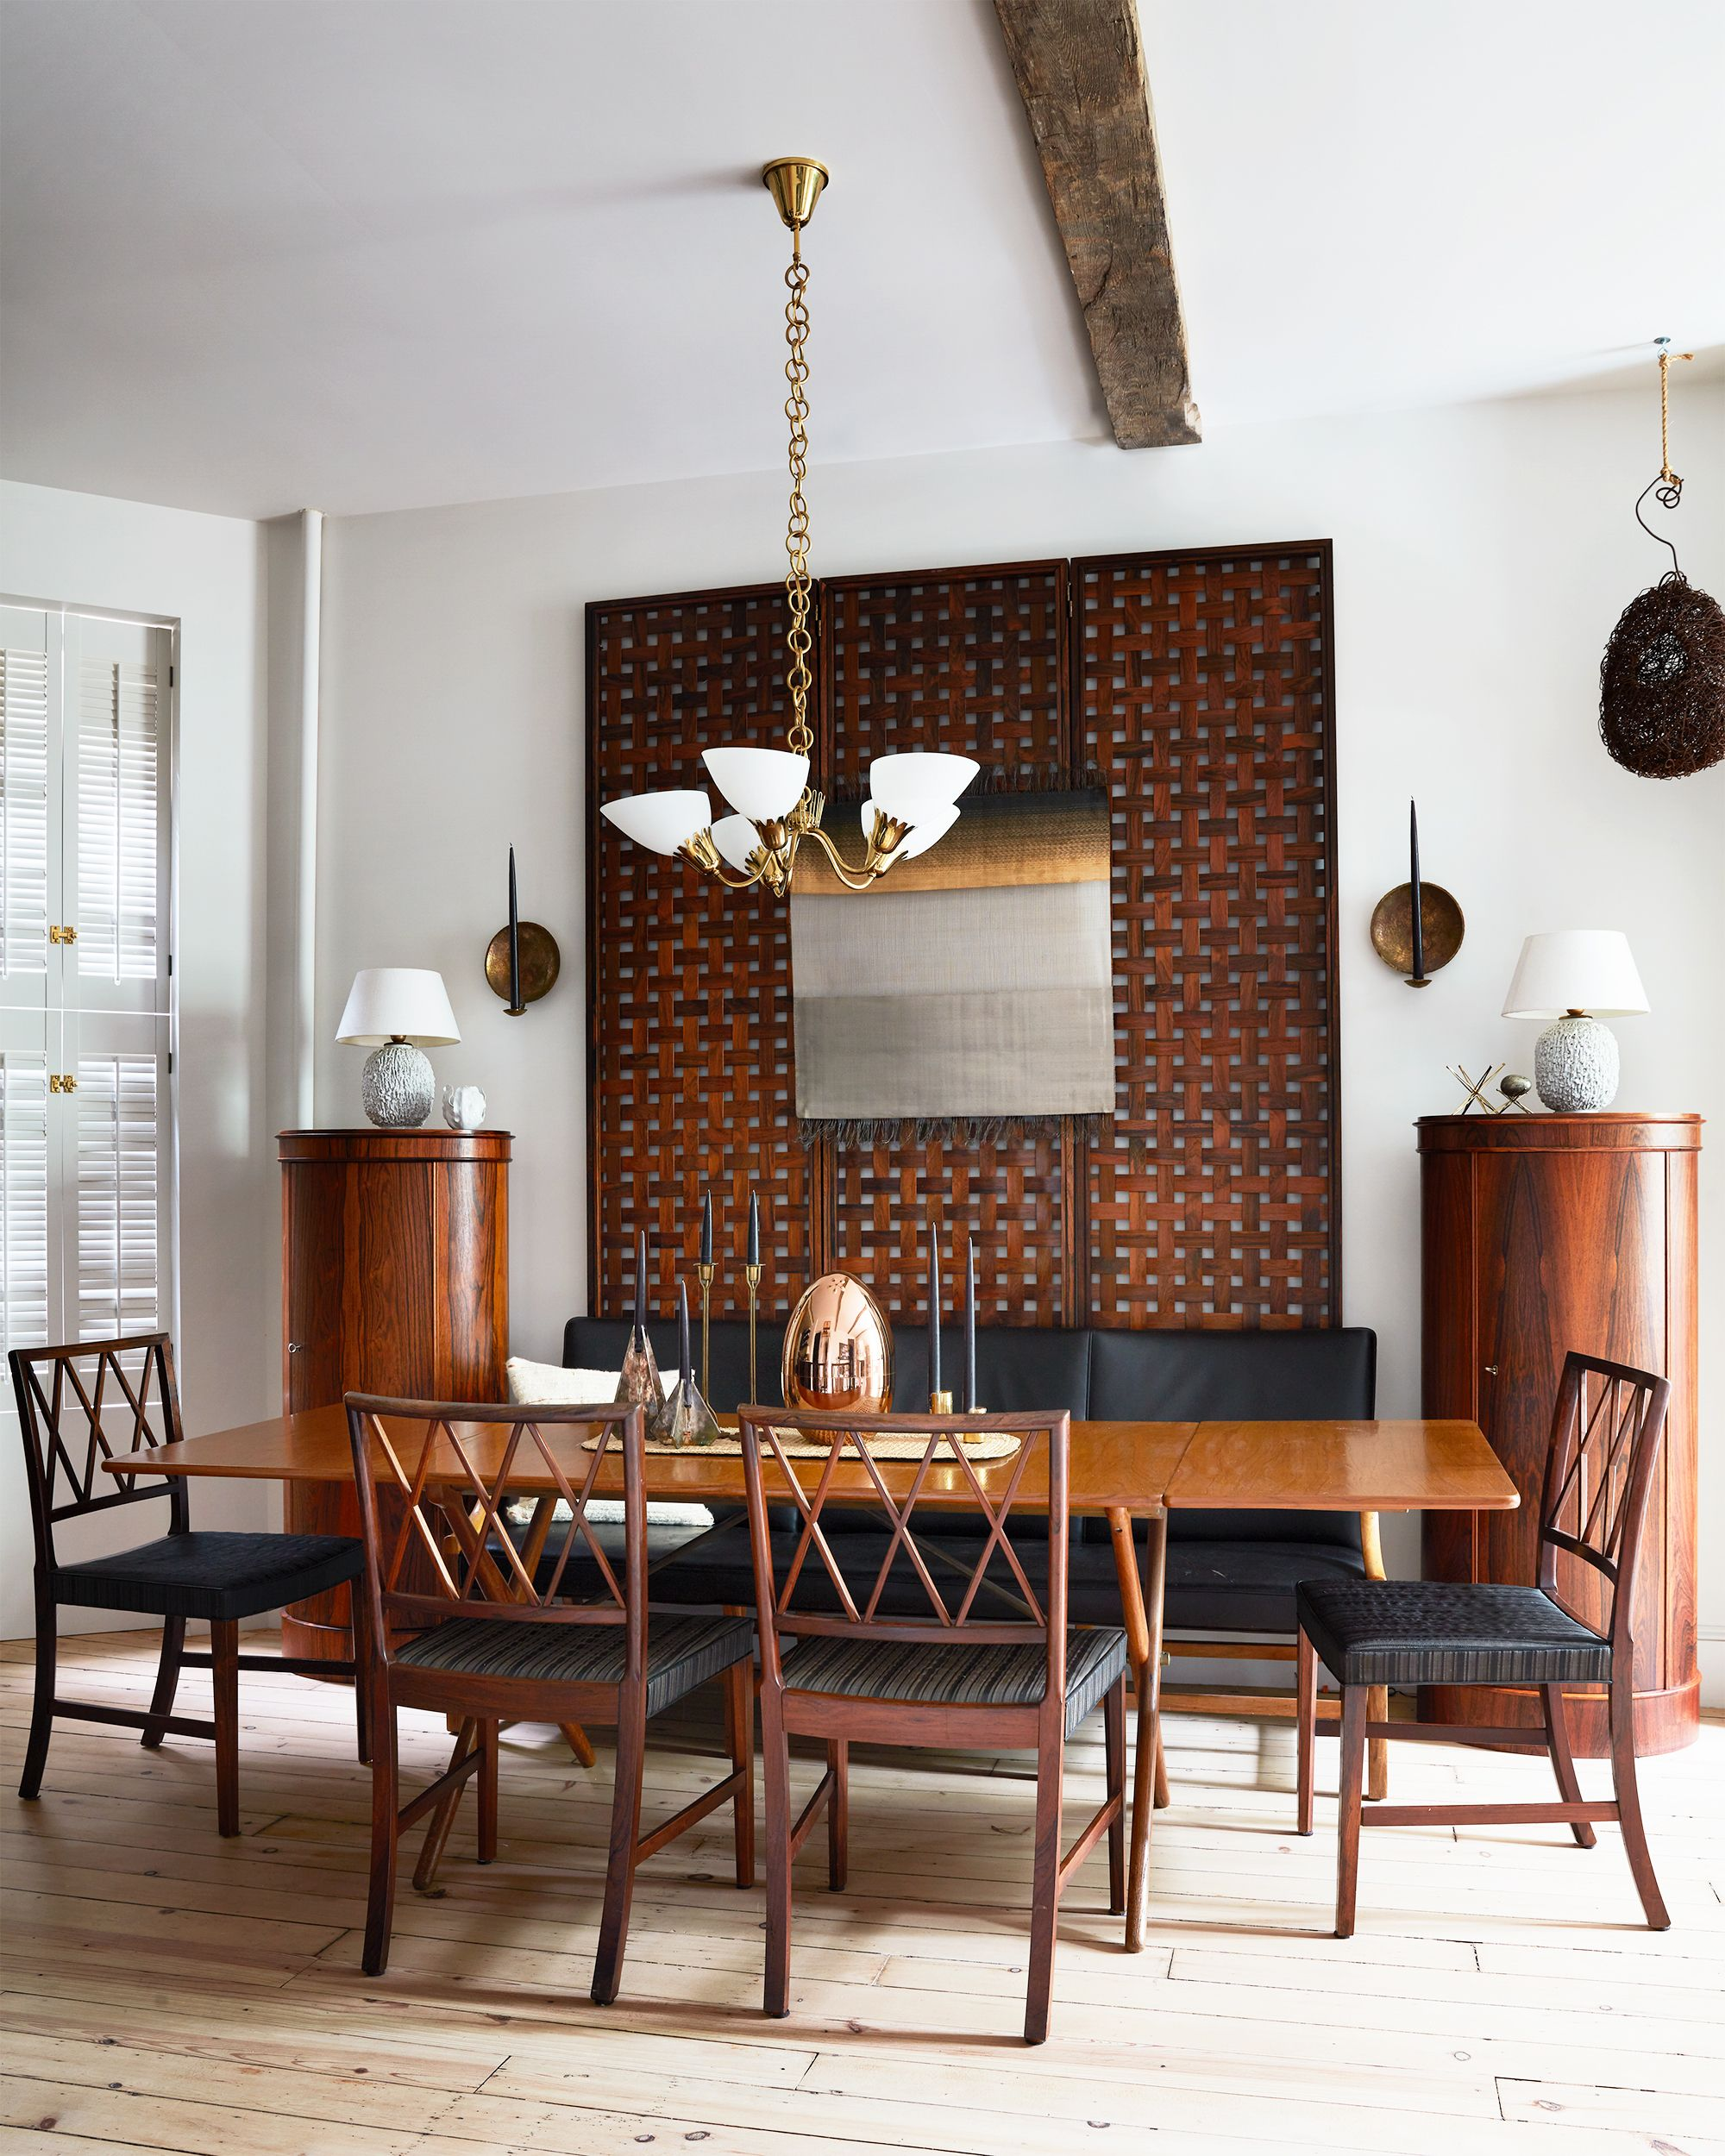 20 Cool Wall Covering Ideas Best, Dining Room Wall Covering